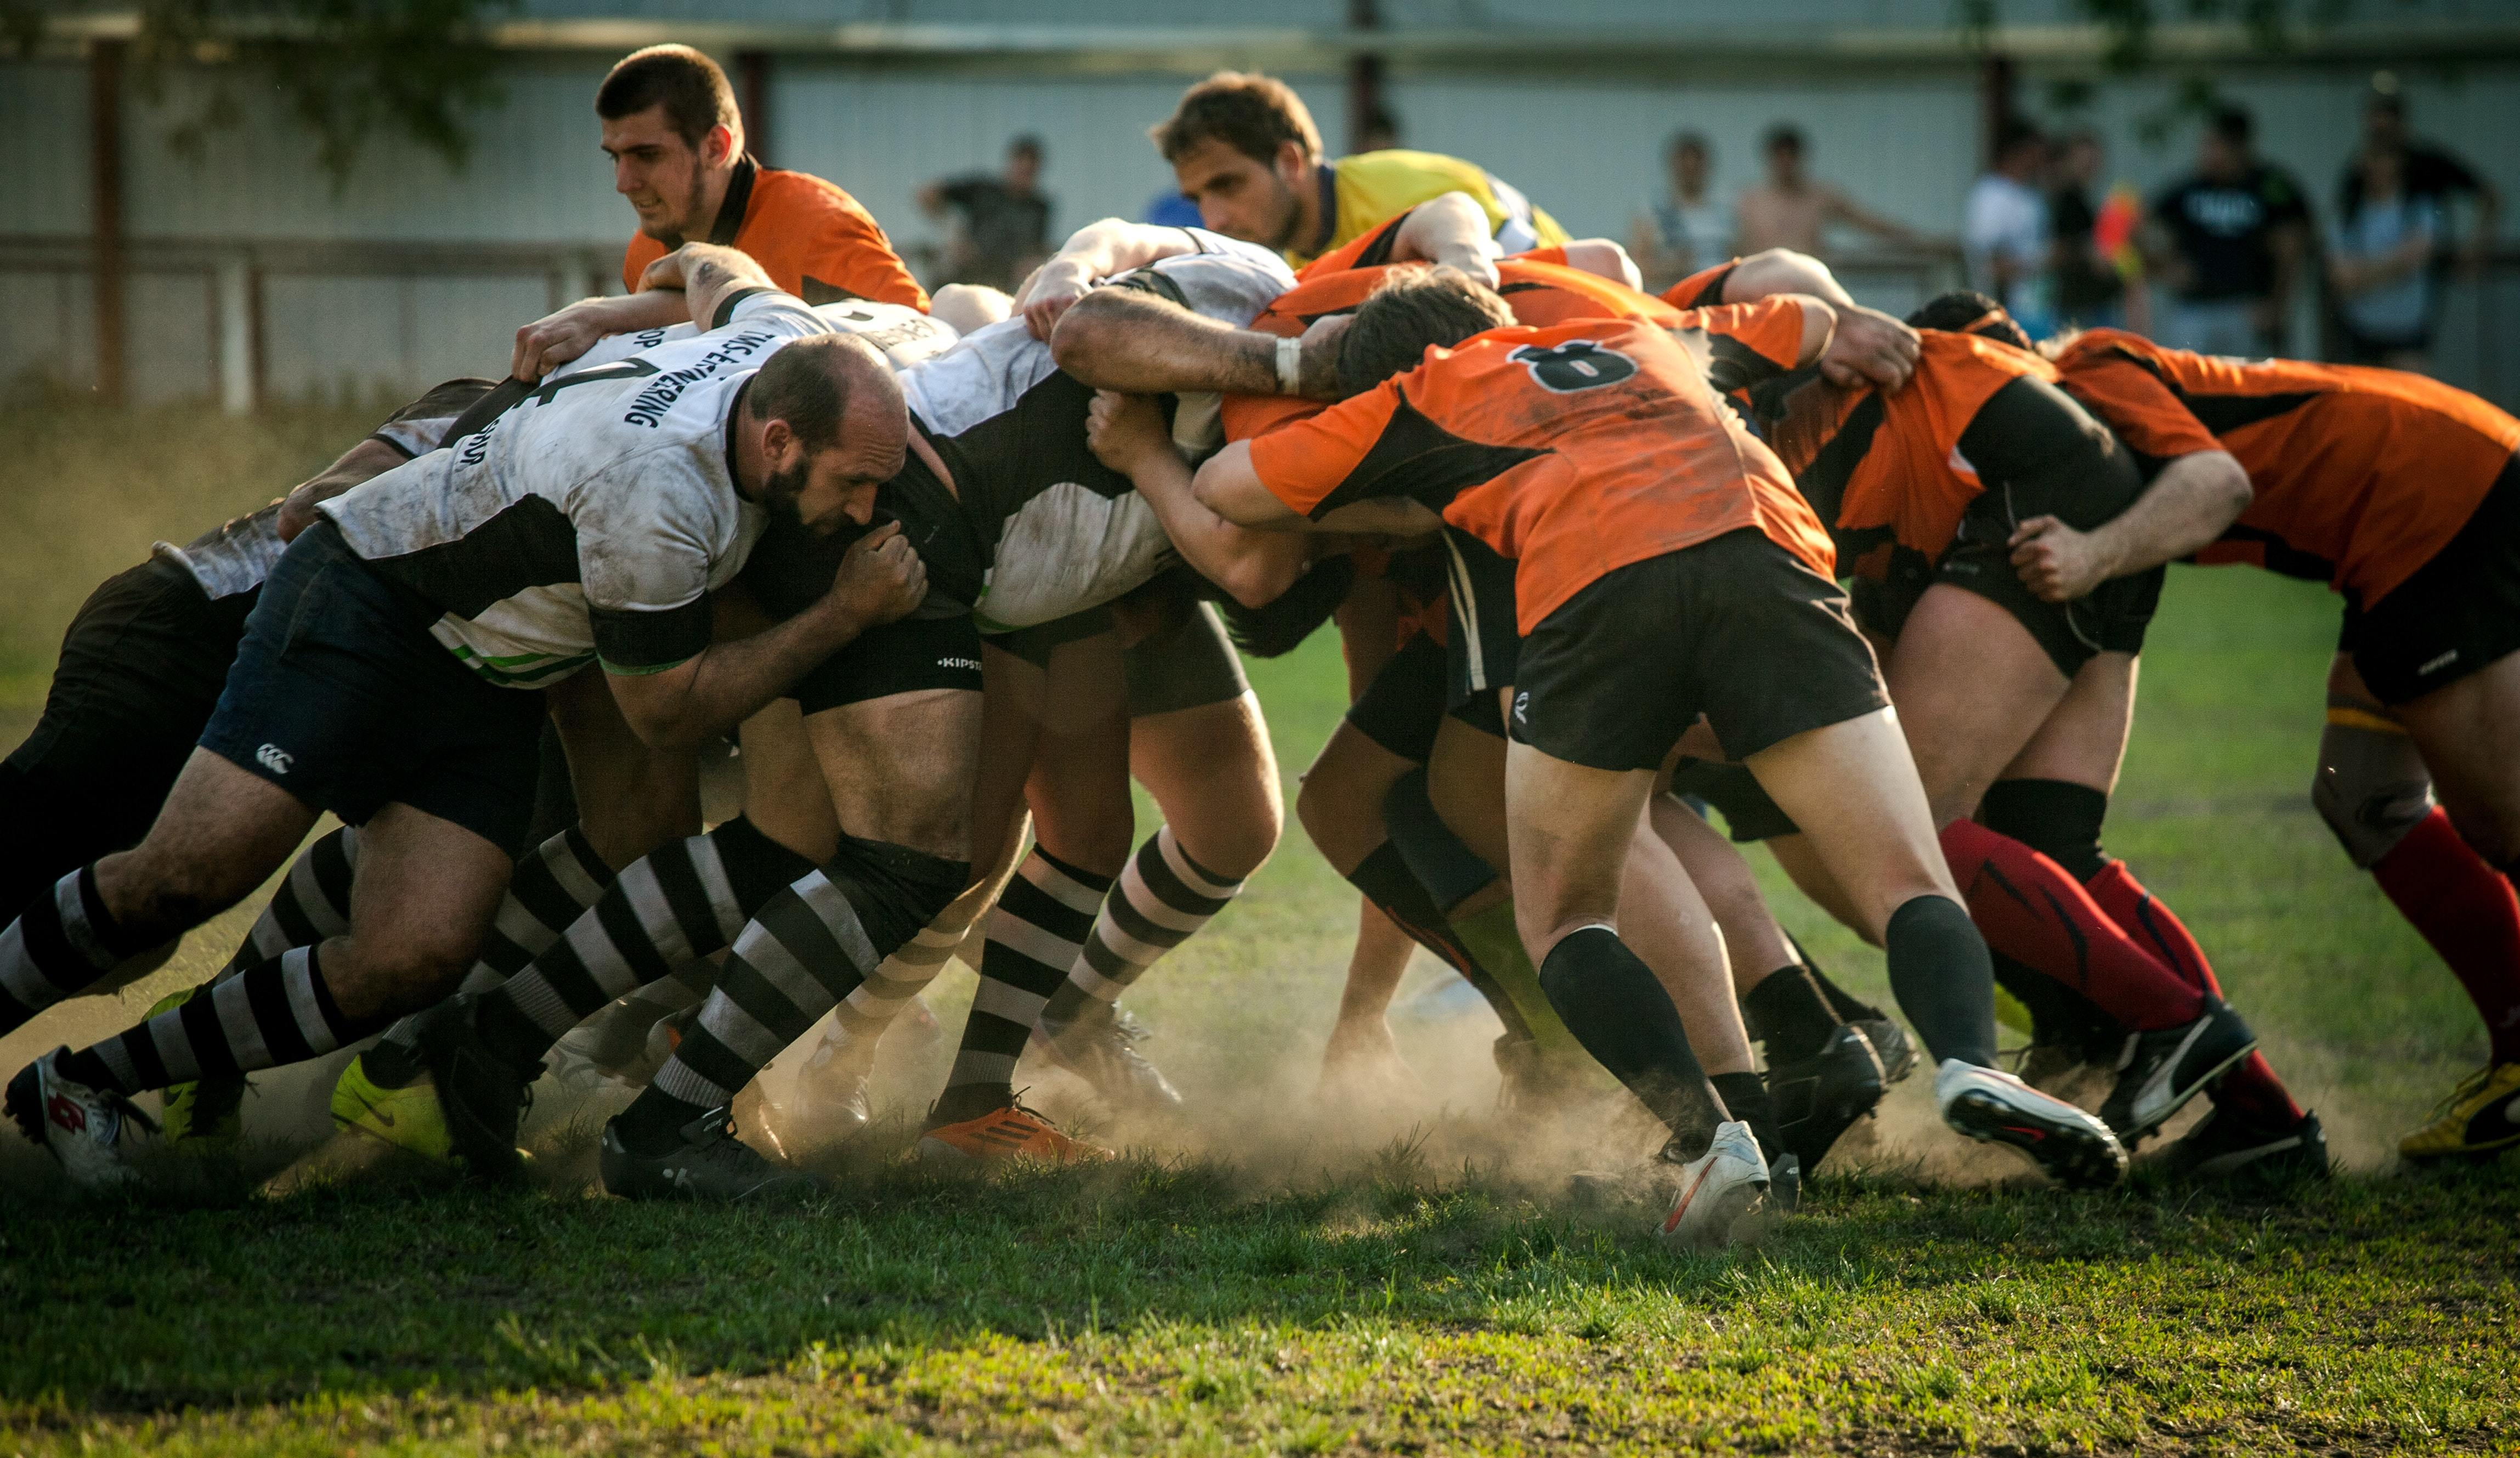 Rugby Team Playing